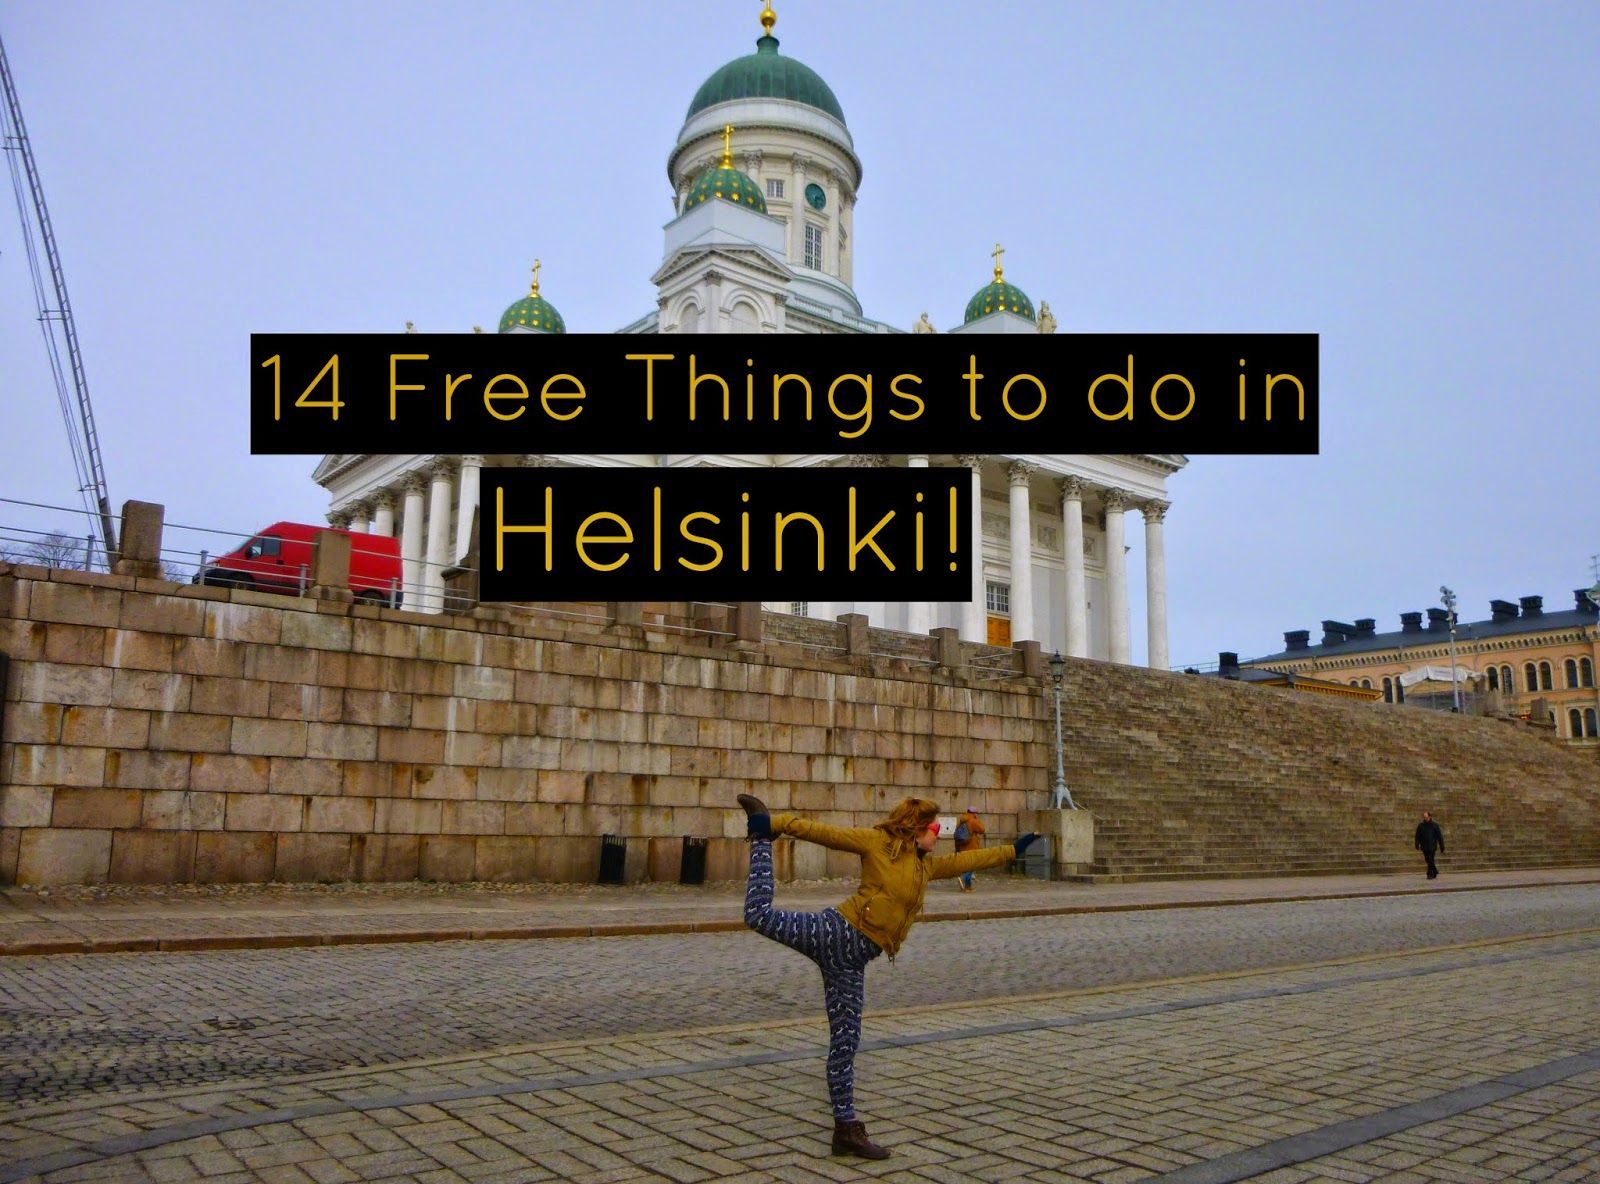 14 FREE Things to do in Helsinki Finland | Travel | Pinterest | Free things, Free things to do ...